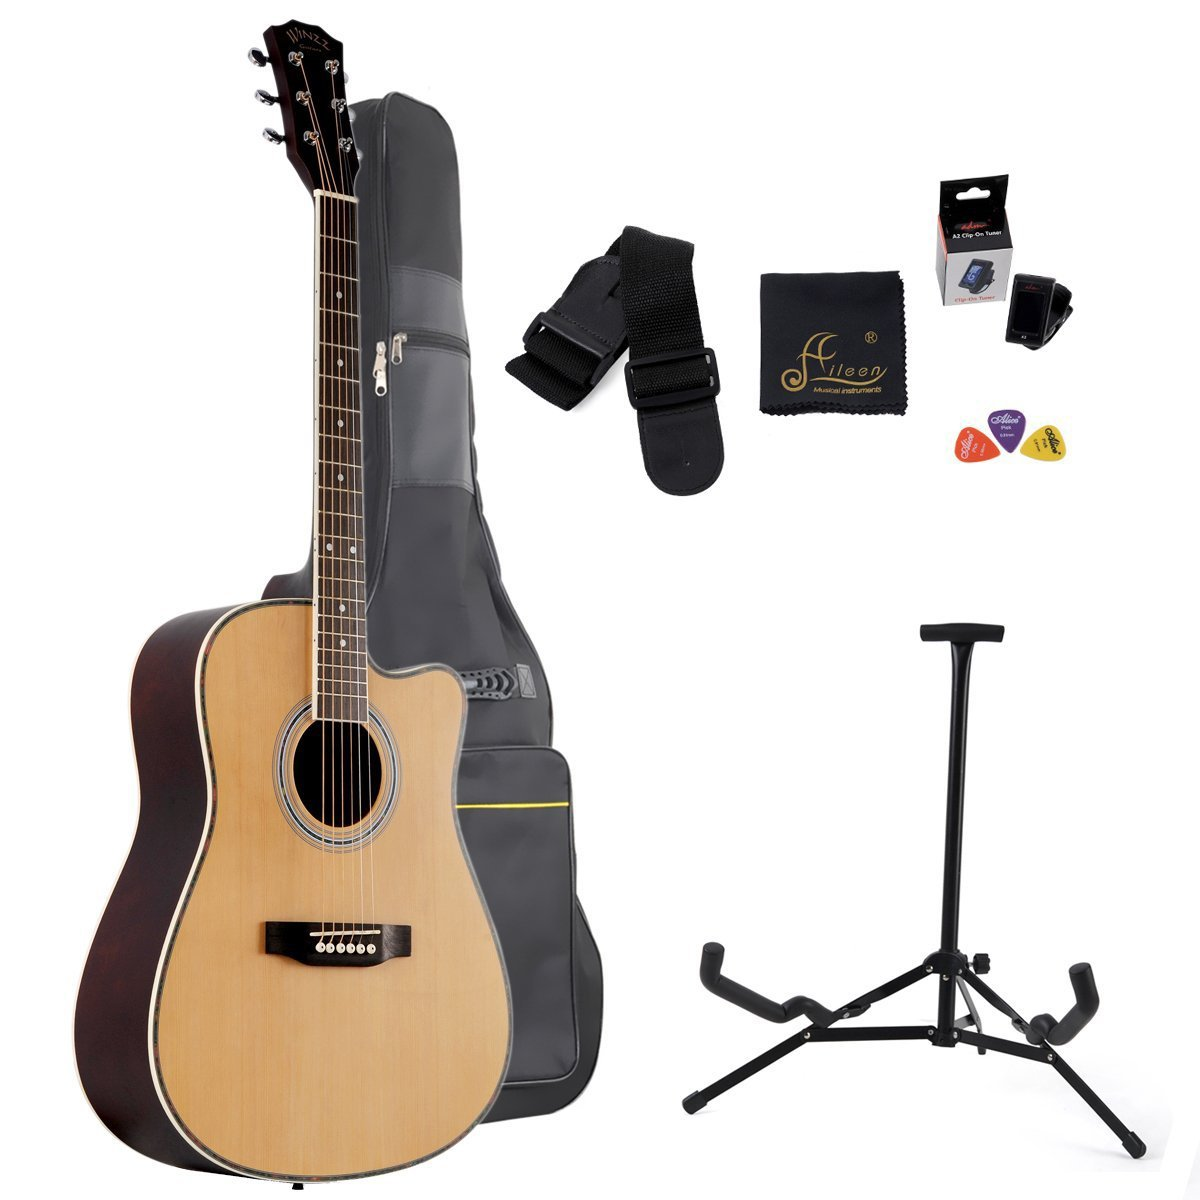 Aileen 41 Inch Full Size Spruce Cutaway Acoustic Guitar with bag, stand, tuner (Natural)